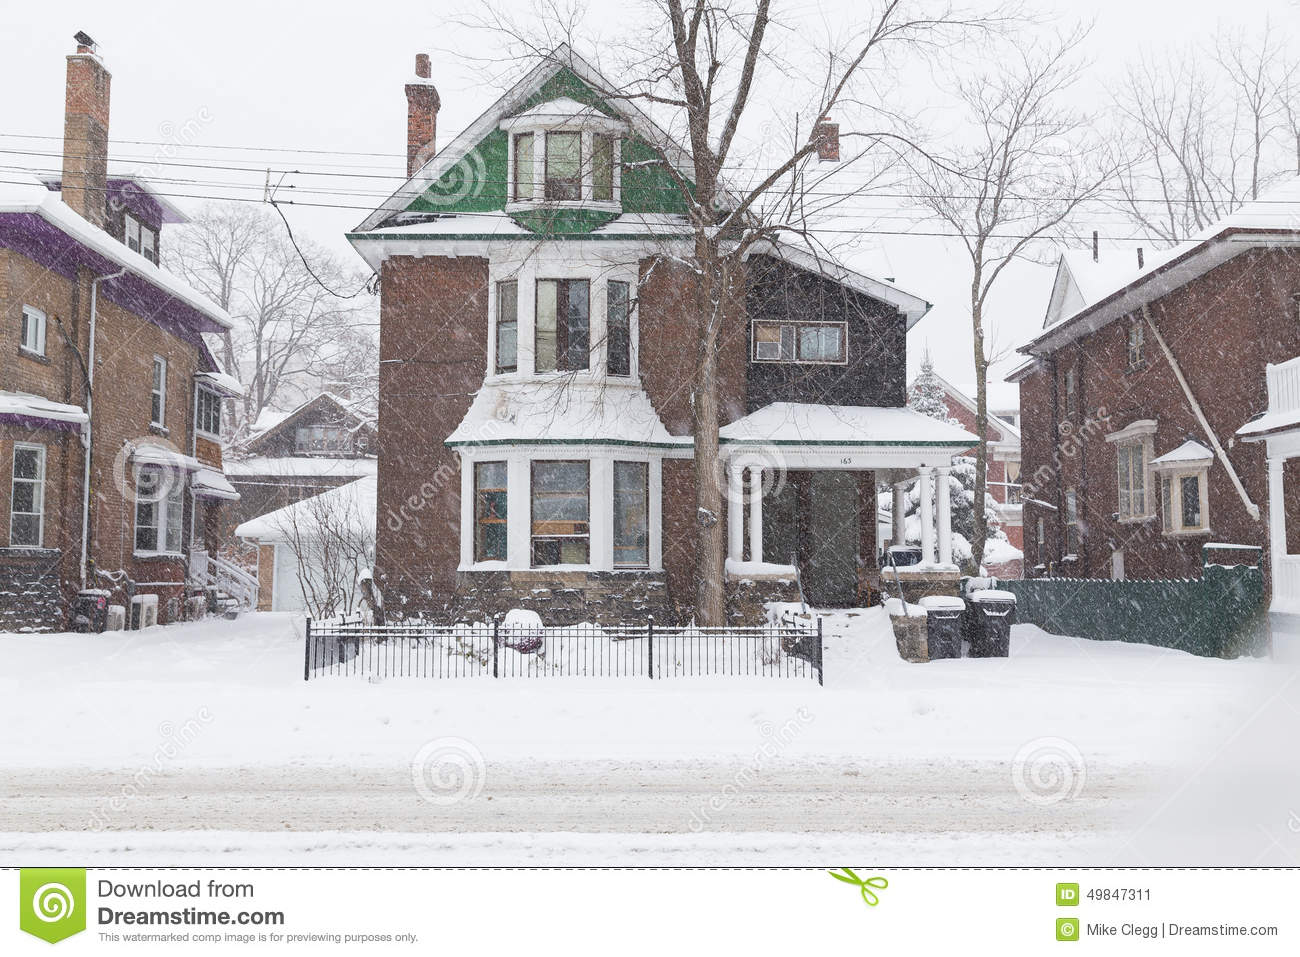 House in Toronto During a Snowstorm